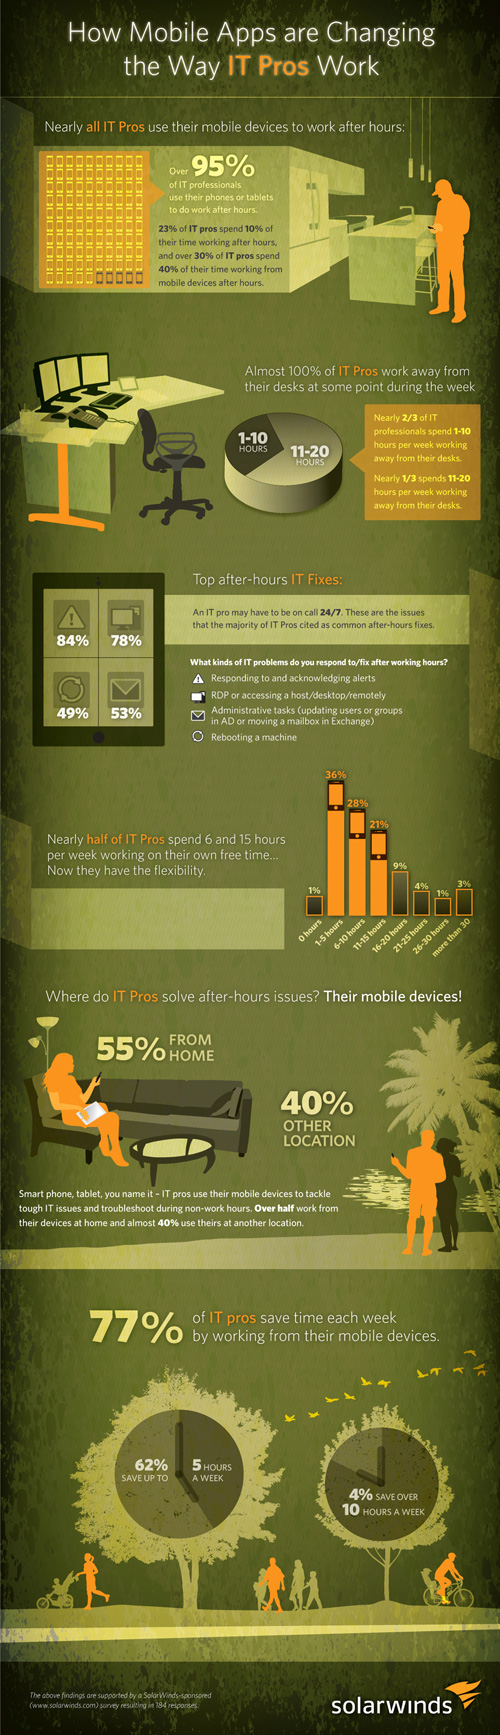 How Mobile Apps are Changing the Way IT Pros Work Infographic How Mobile Apps are Changing the Way IT Pros Work